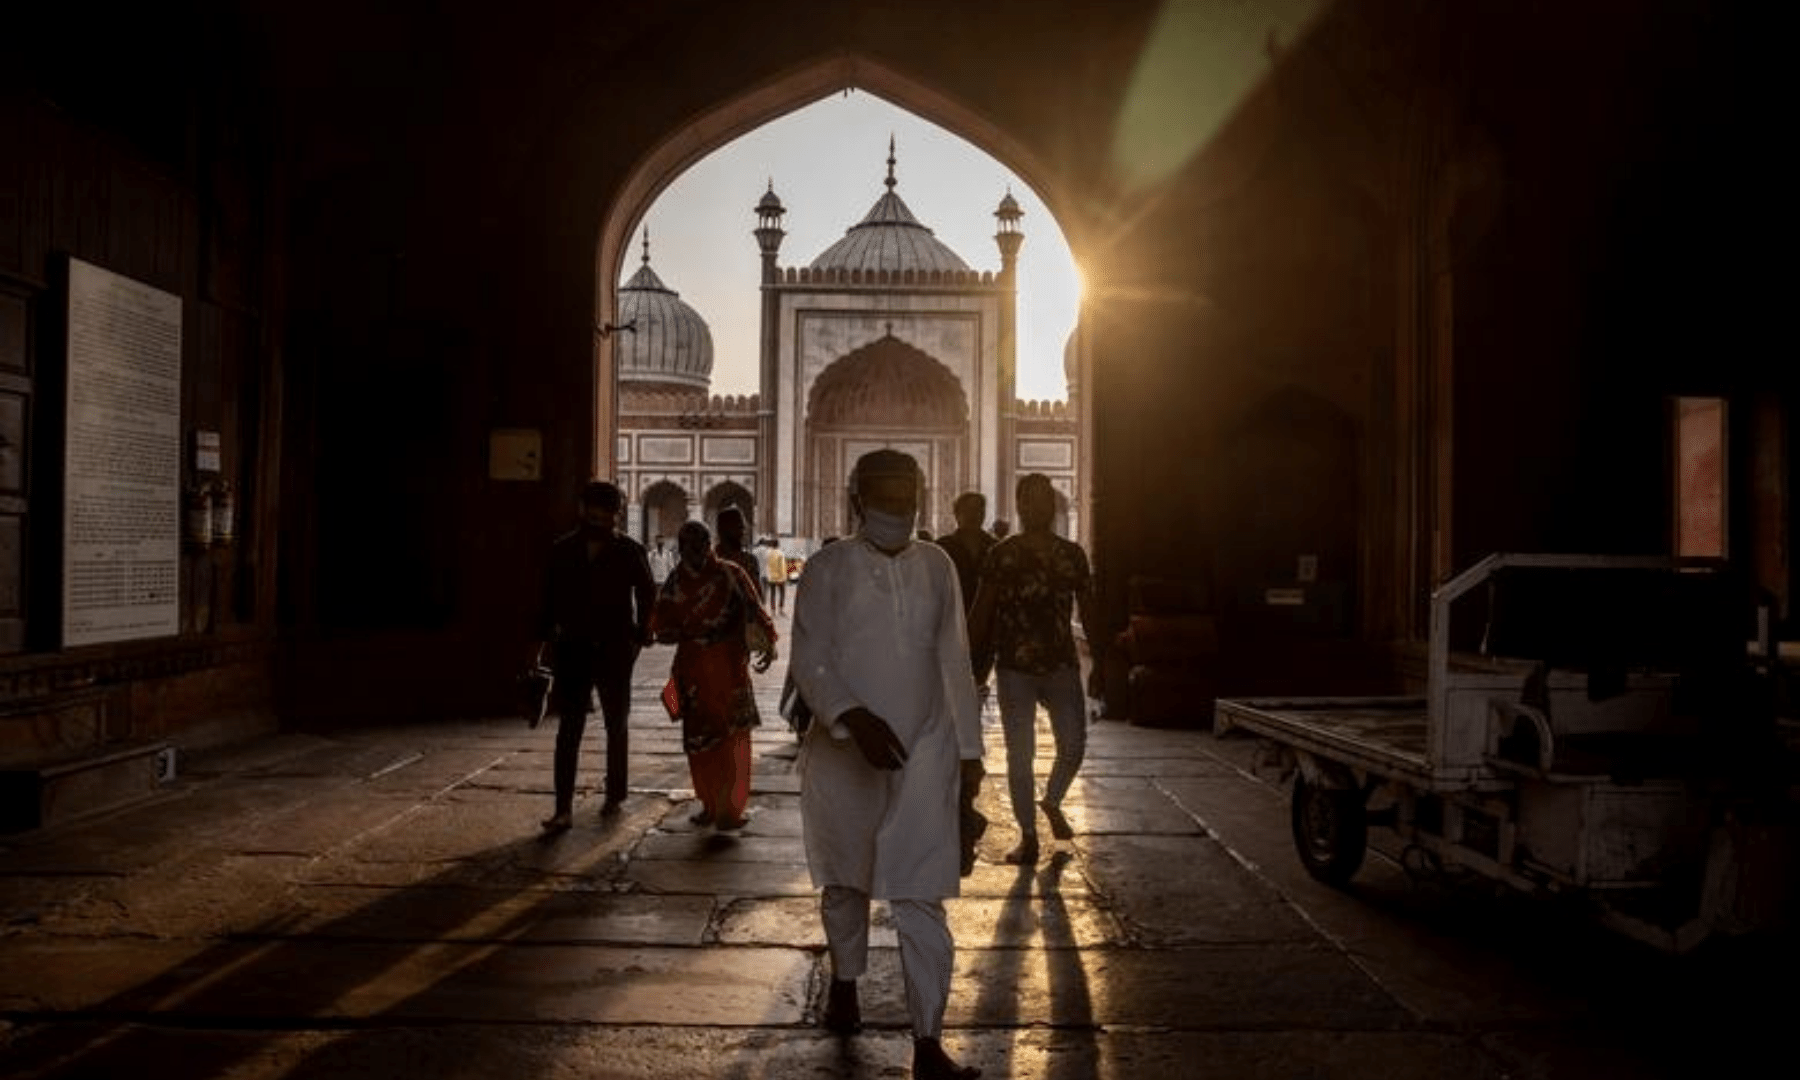 People leave after offering prayers on the first day of Ramazan at Jama Masjid in the old quarters of Delhi, India. — Reuters